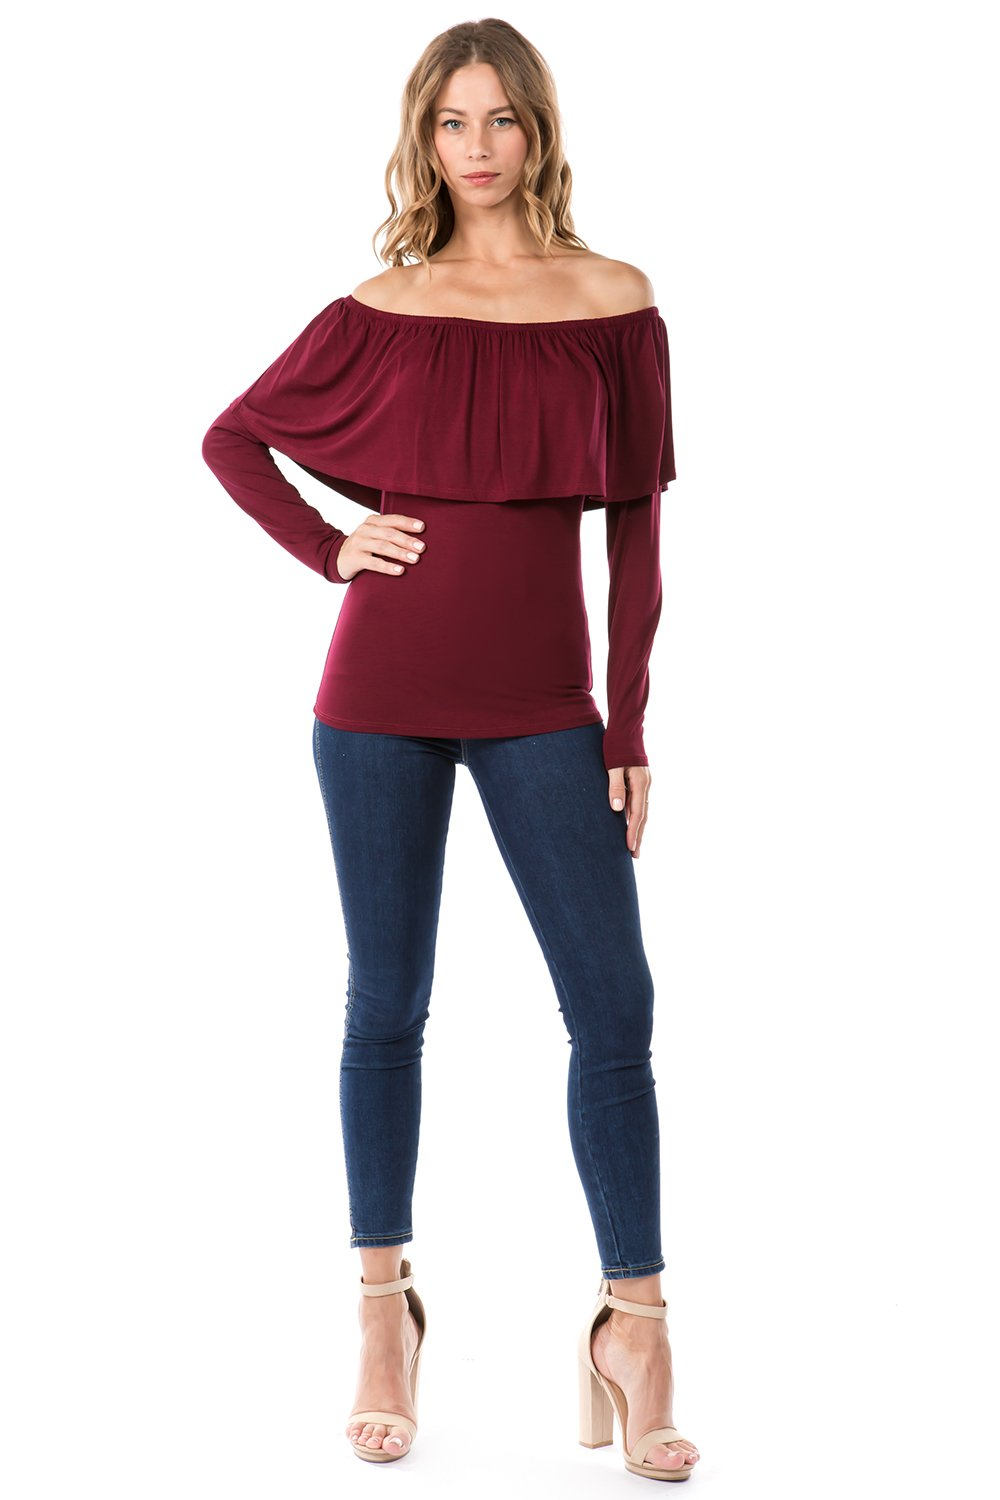 Off Shoulder Ruffled Neck Blouse in Burgundy Front